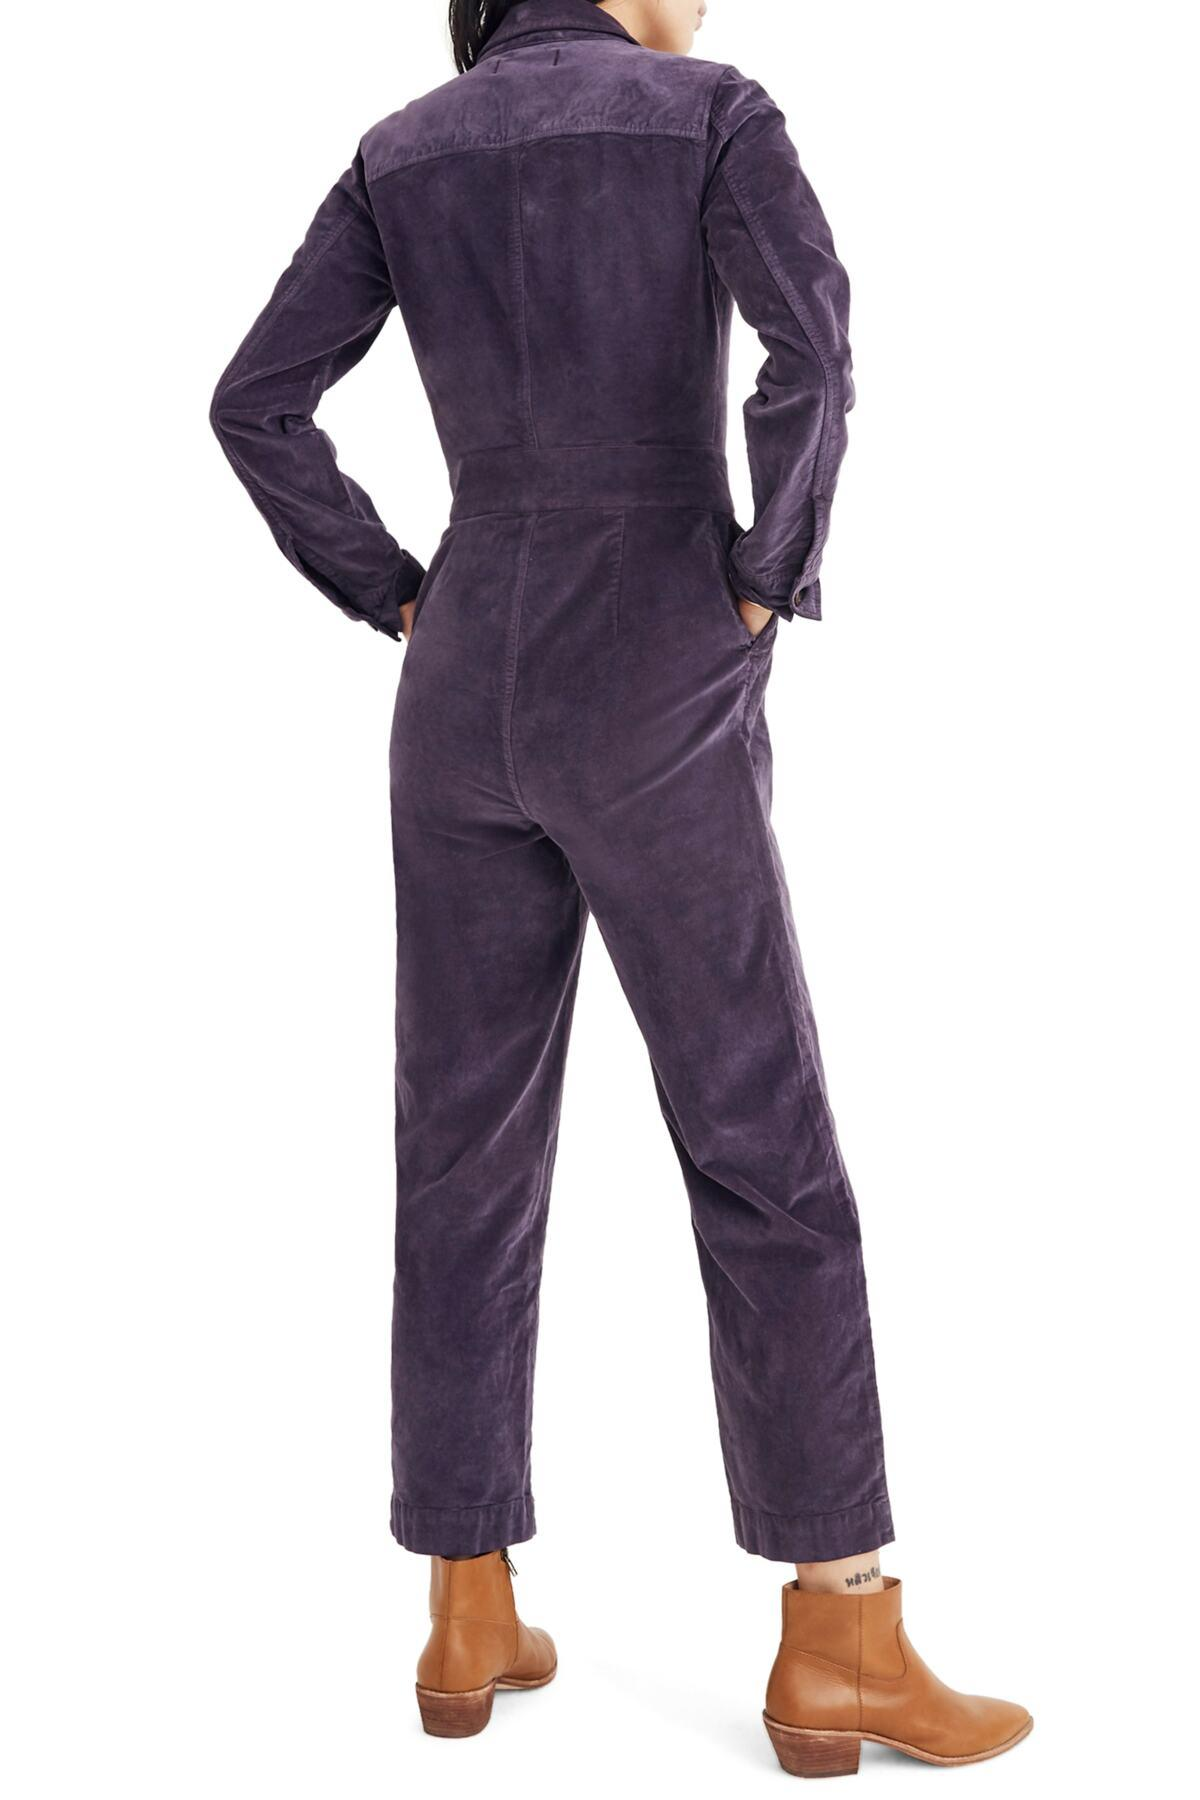 68c9c6a37632 Madewell - Purple Velveteen Slim Coverall Jumpsuit - Lyst. View fullscreen